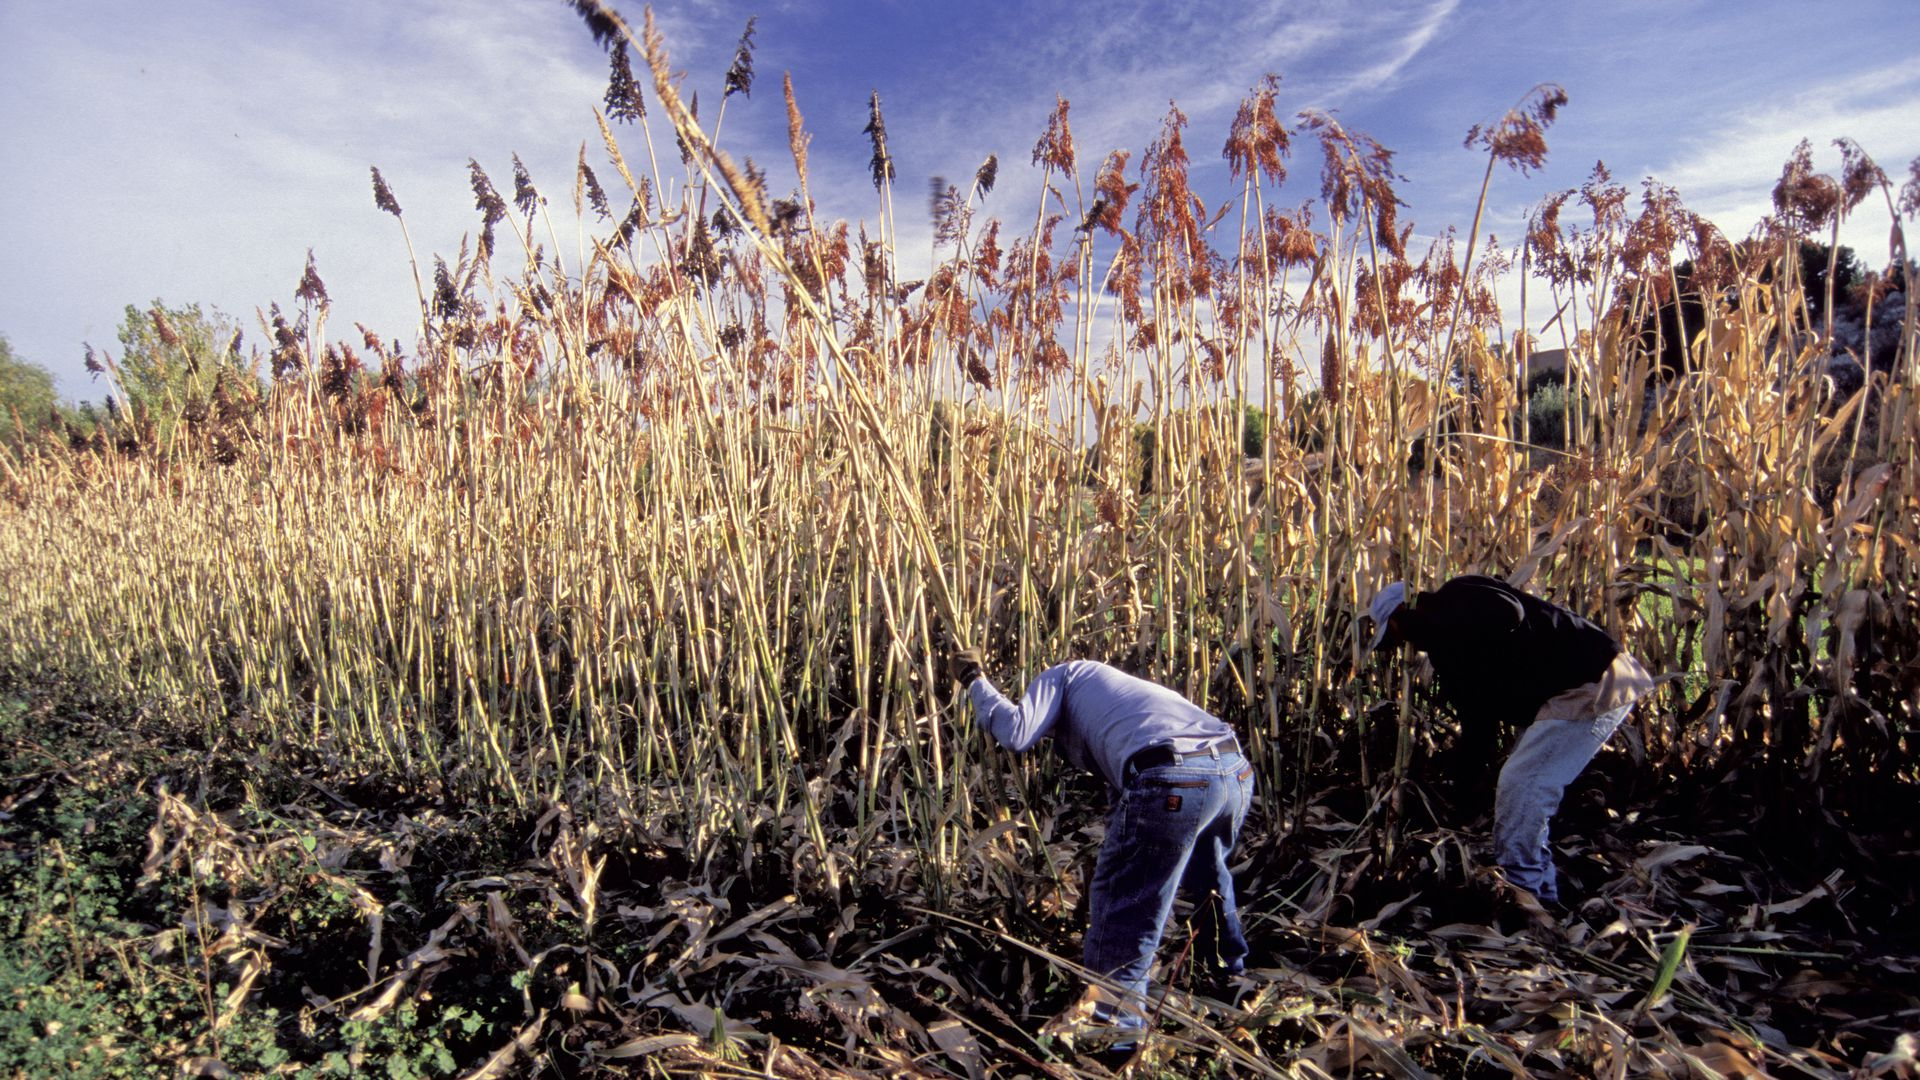 Two farmers with backs to the camera harvest sorghum